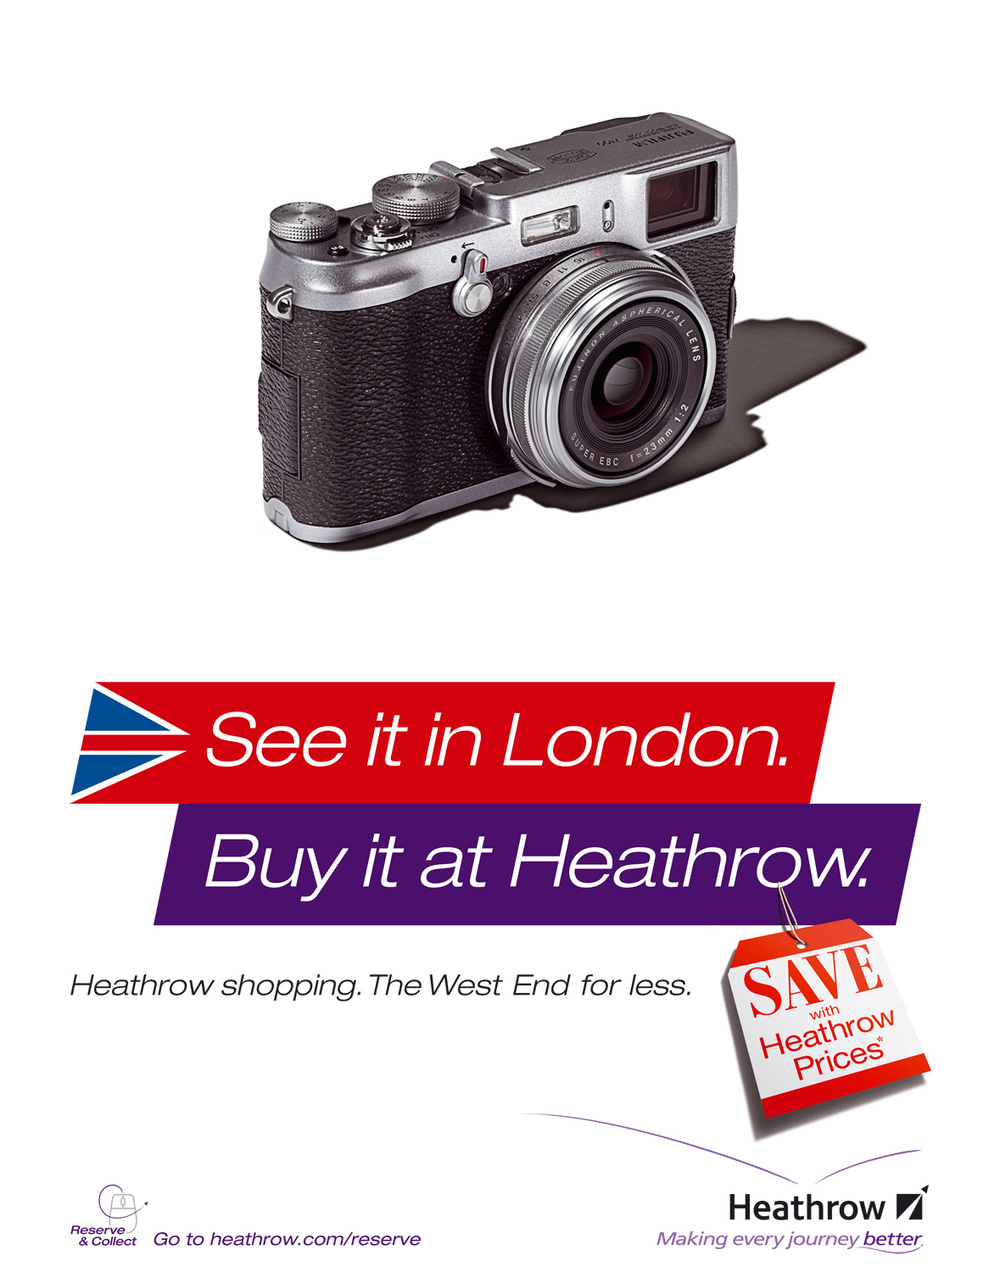 Heathrow-Summer-Campaign-Fuji-camera.jpg